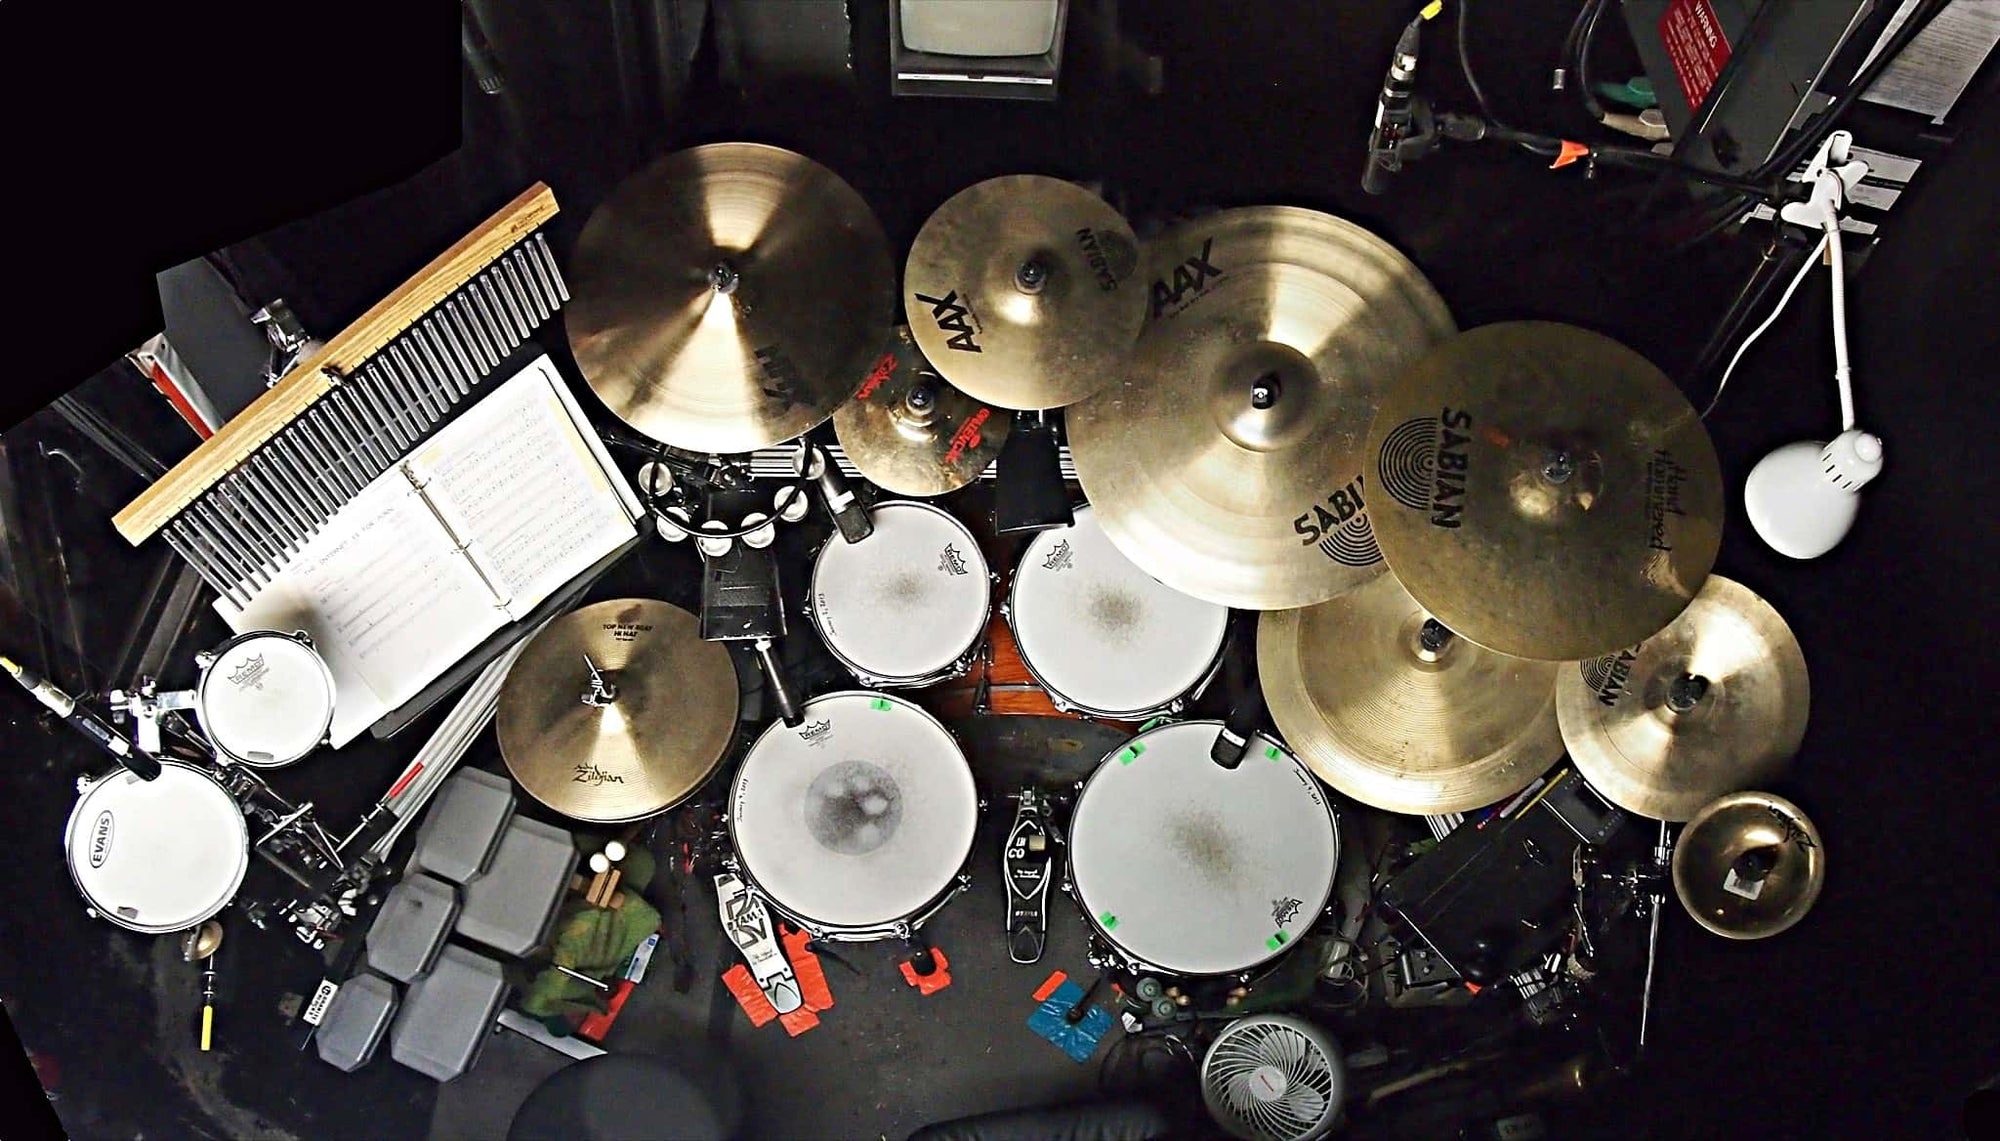 Joe Choroszewski's setup for the Off-Broadway production of Avenue Q at New World Stages, in New York City.